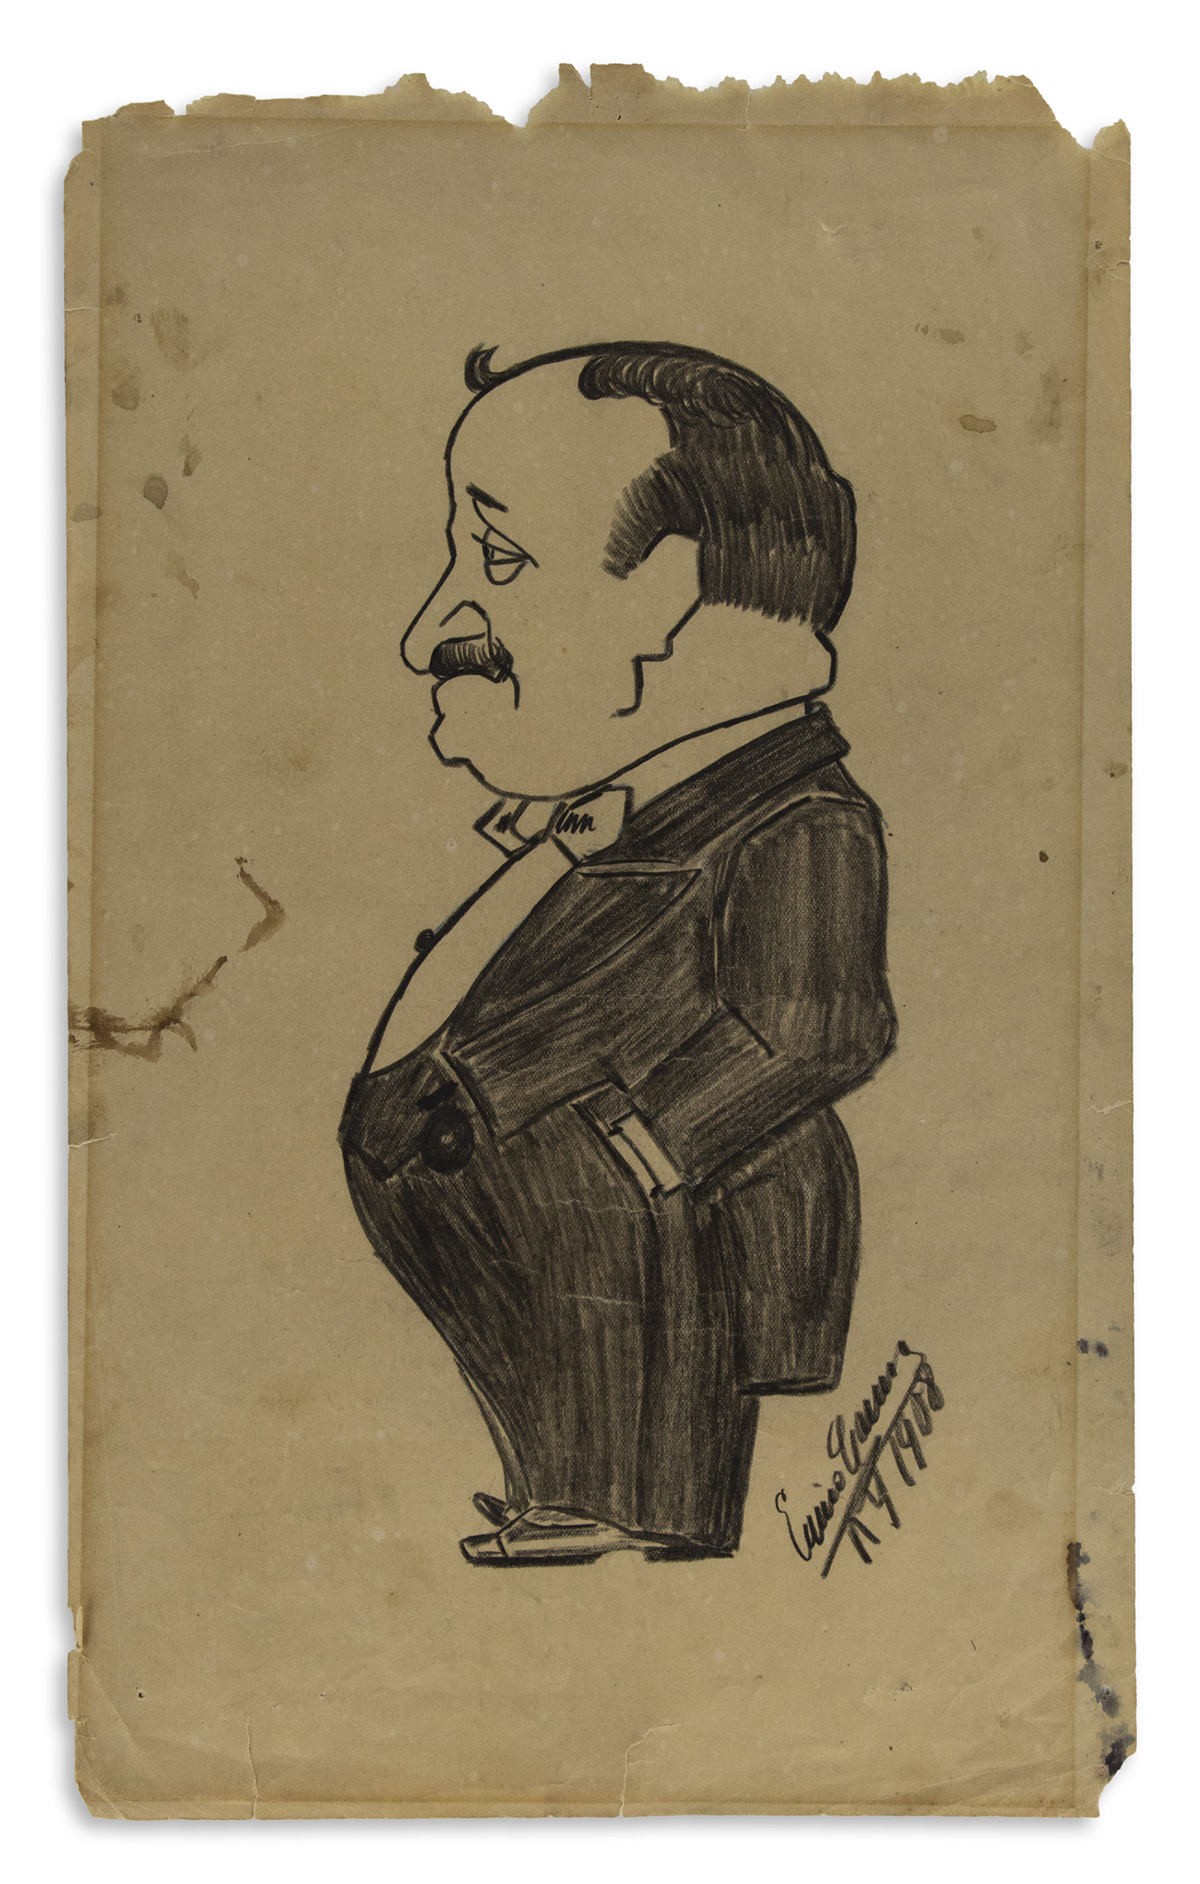 CARUSO, ENRICO. Graphite drawing, dated and Signed, full-length caricature, showing a portly man [Milan tenor Dante Del Papa] in profil